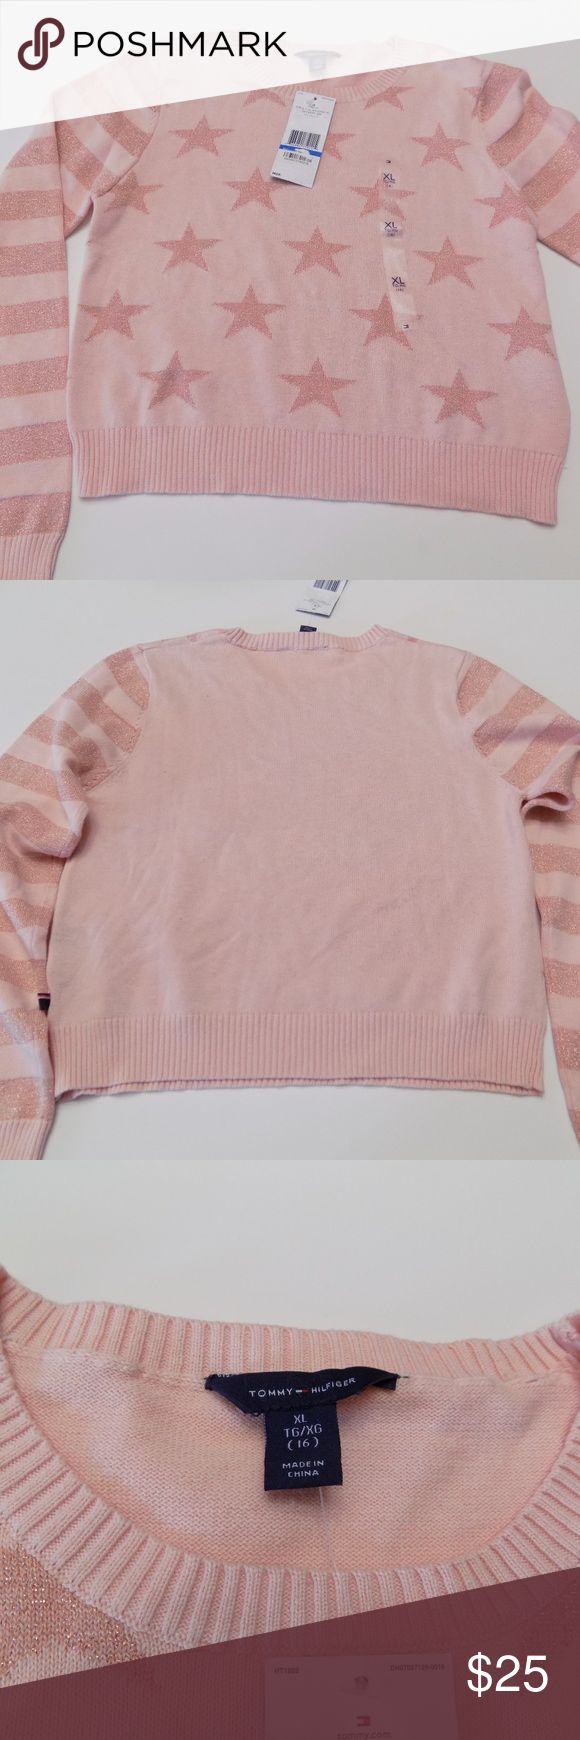 Cute Tommy Hilfiger Girl's Stars Sweater NEW WITH TAG sweater for girls  size 7-16. Pit to pit is approximately 16, neckline to bottom 17.5.  93% Cotton 7% other fibers. Color is MELON. Tommy Hilfiger Shirts & Tops Sweaters